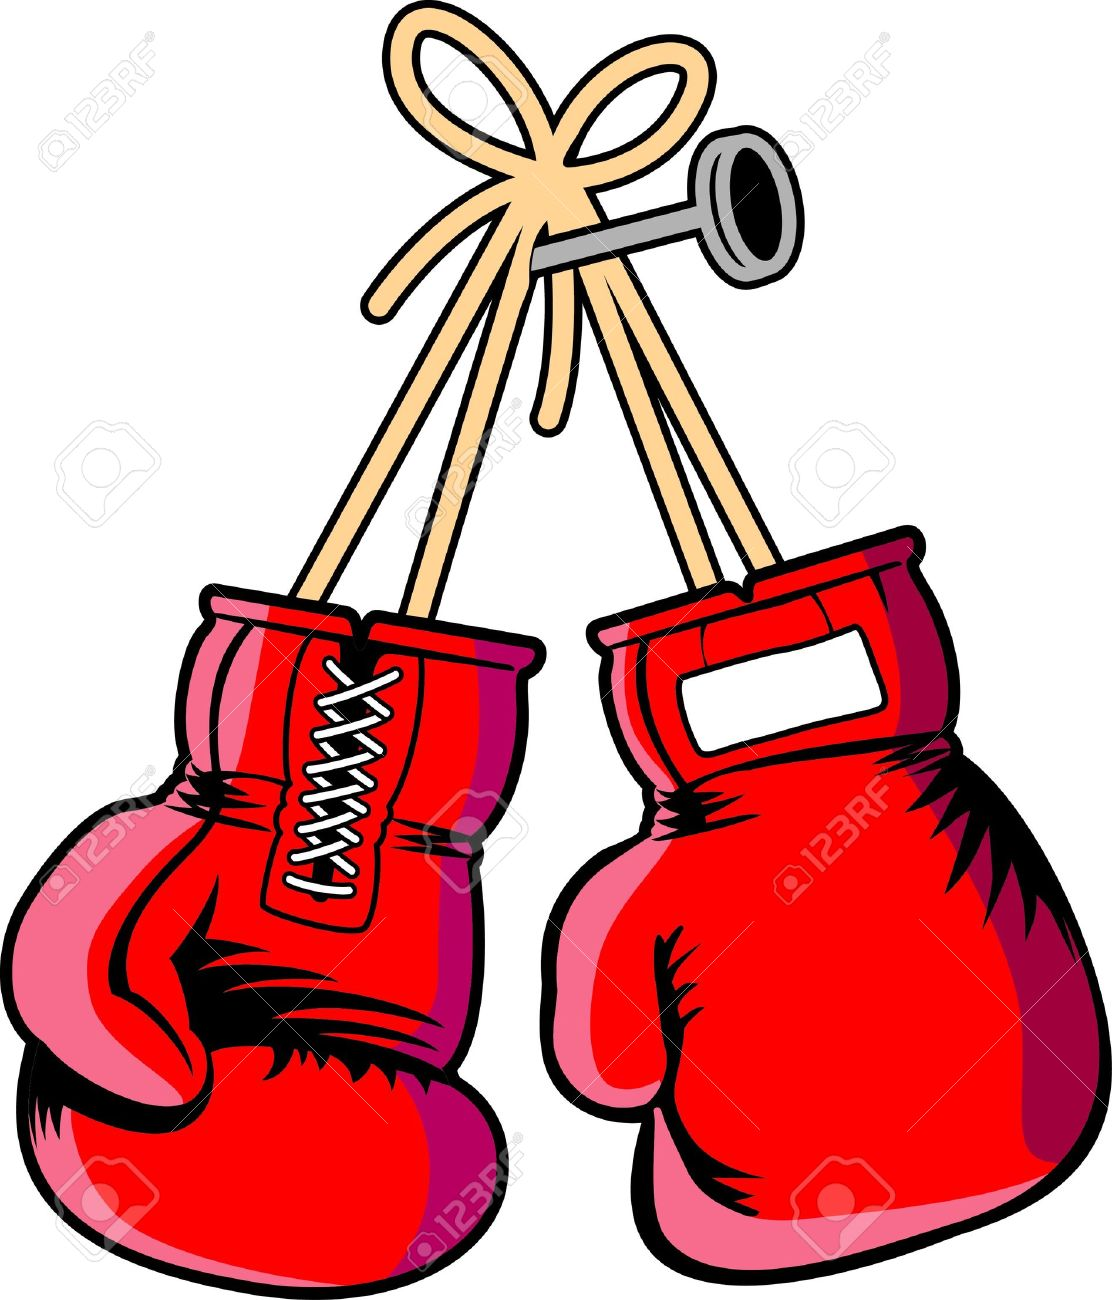 Boxing gloves clipart free 1 » Clipart Station.